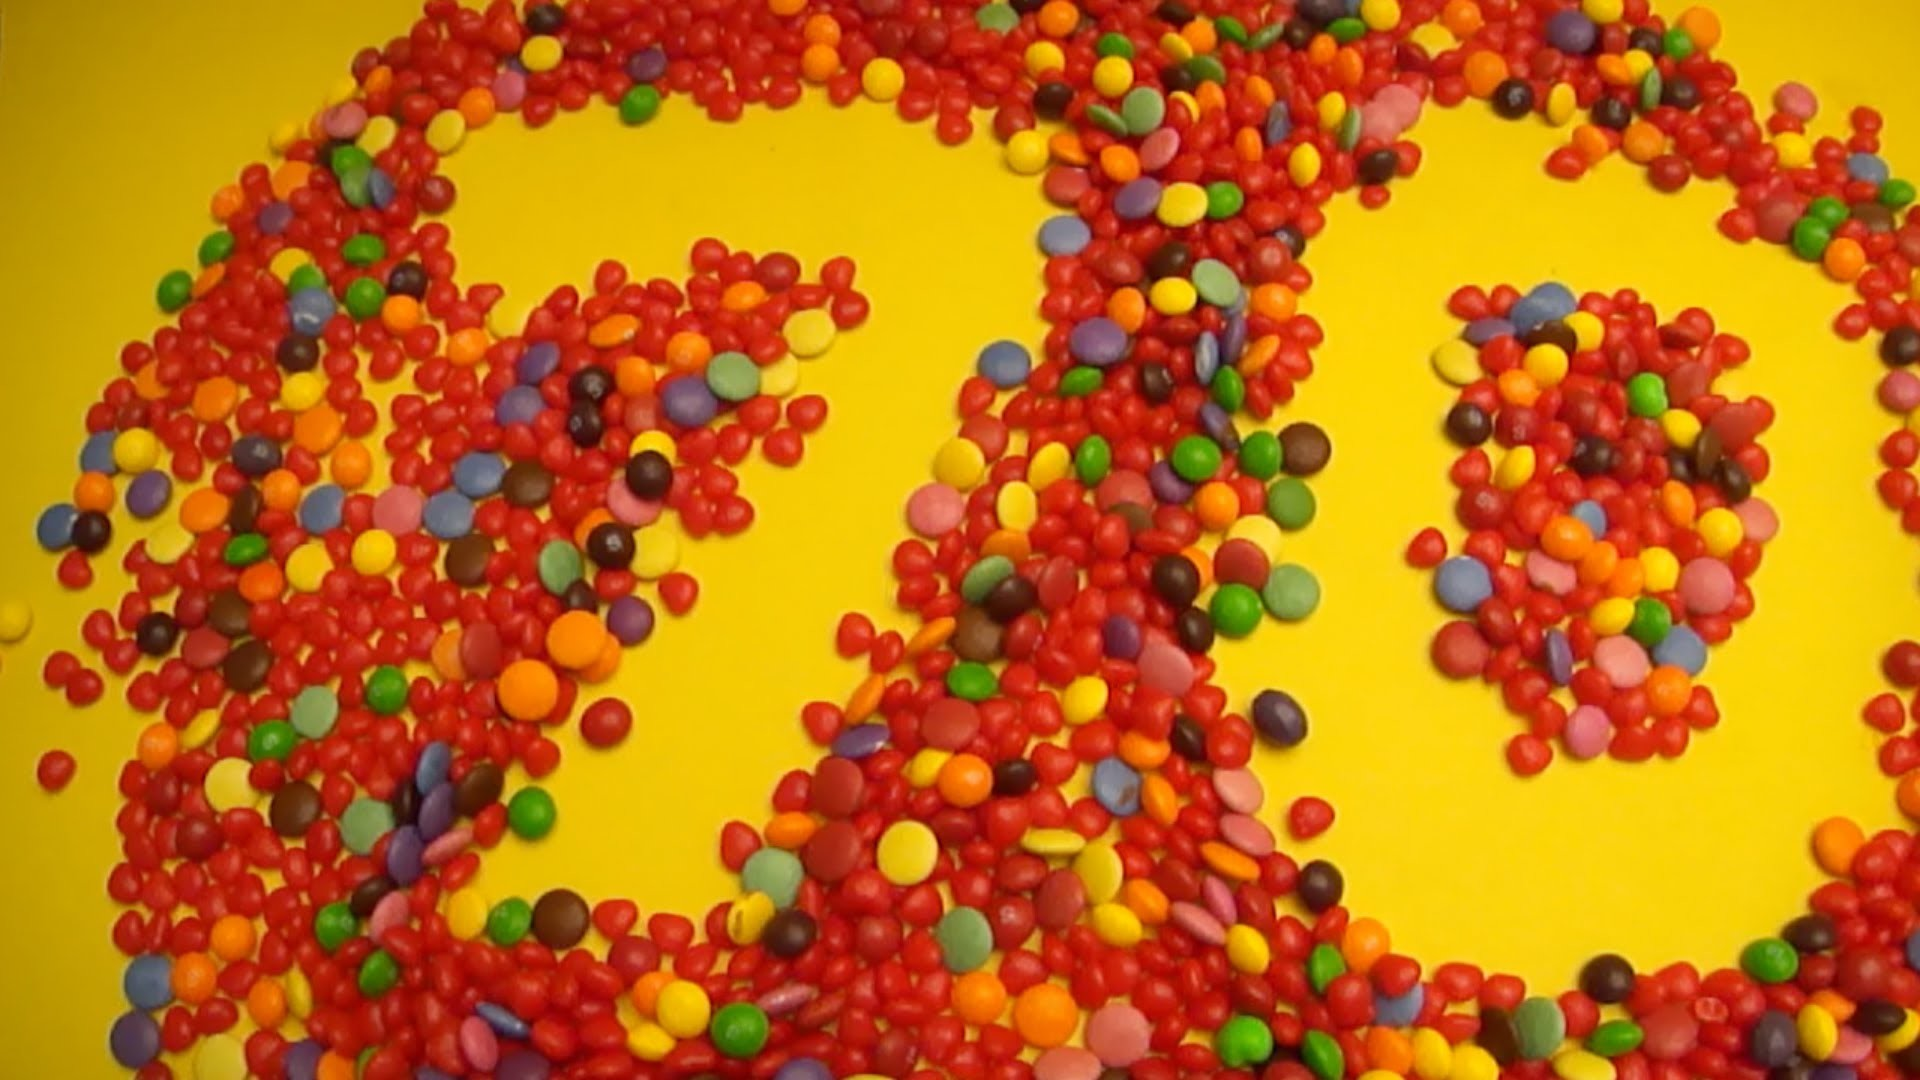 Learn To Count 1 to 70 with Candy Numbers! Surprise Eggs with Smarties  Skittles and Candy Hearts – YouTube